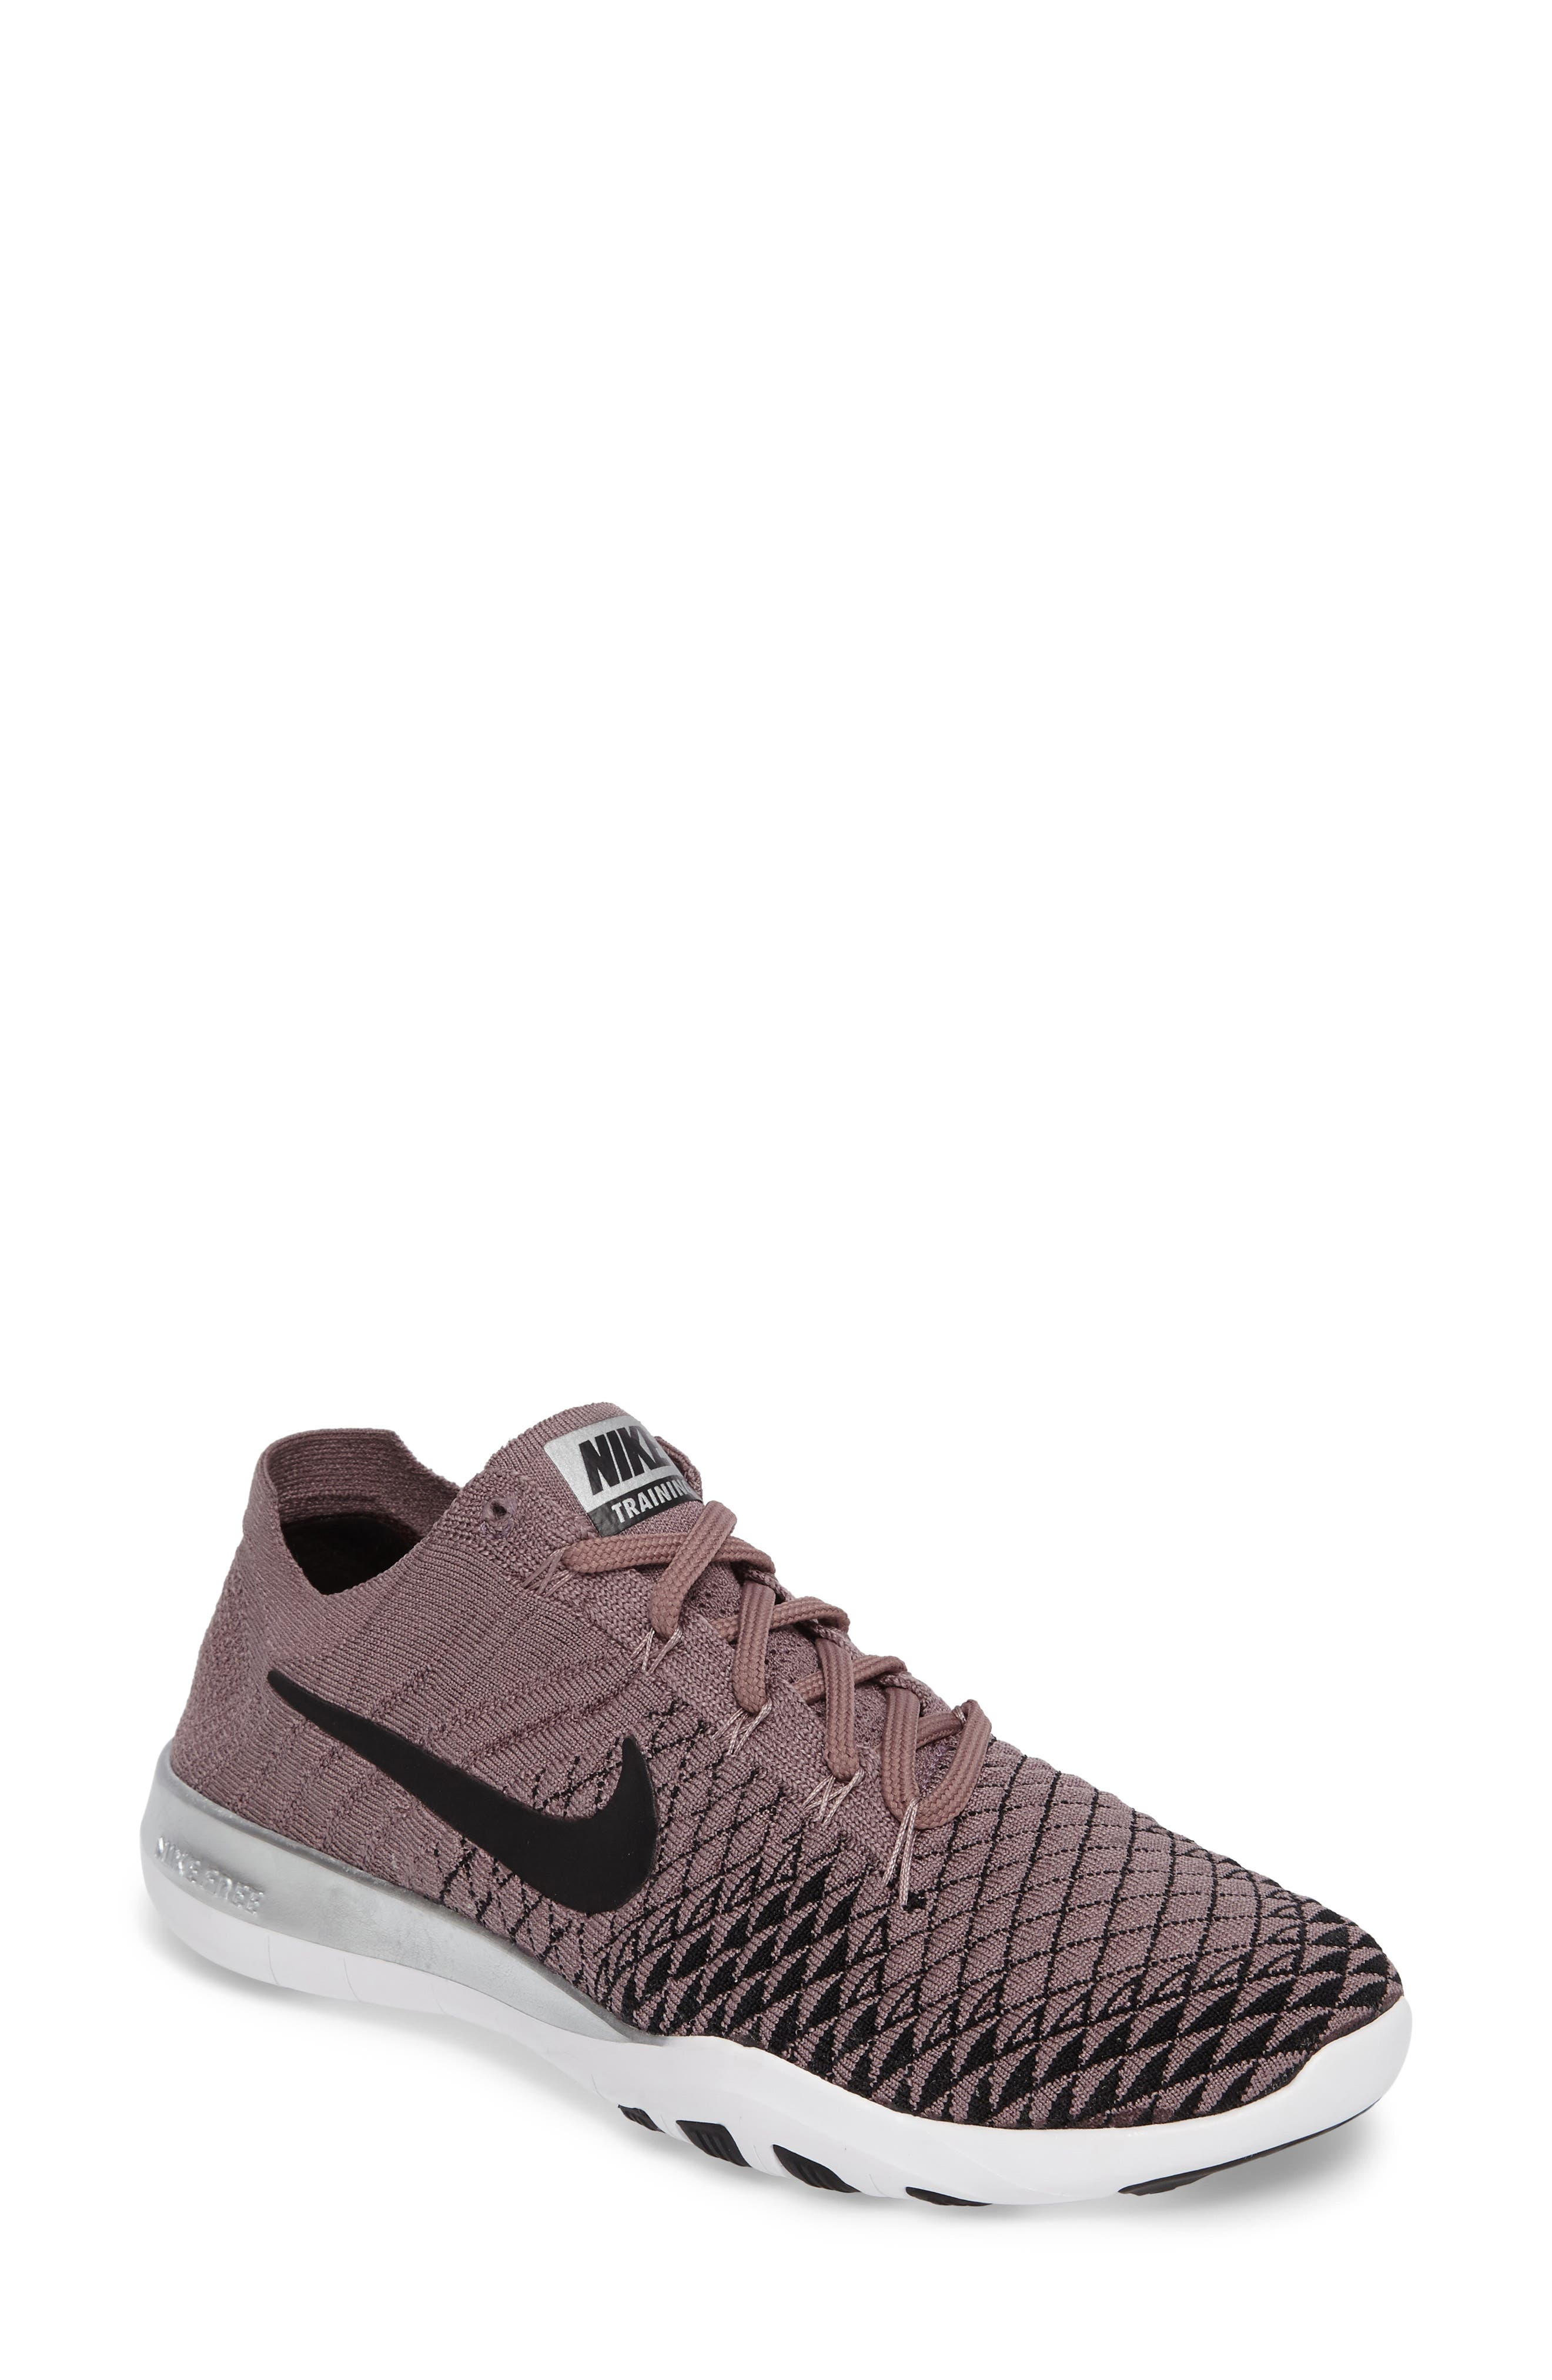 Free Focus Flyknit 2 Bionic Training Shoe,                             Main thumbnail 1, color,                             Taupe Grey/ Black/ Chrome